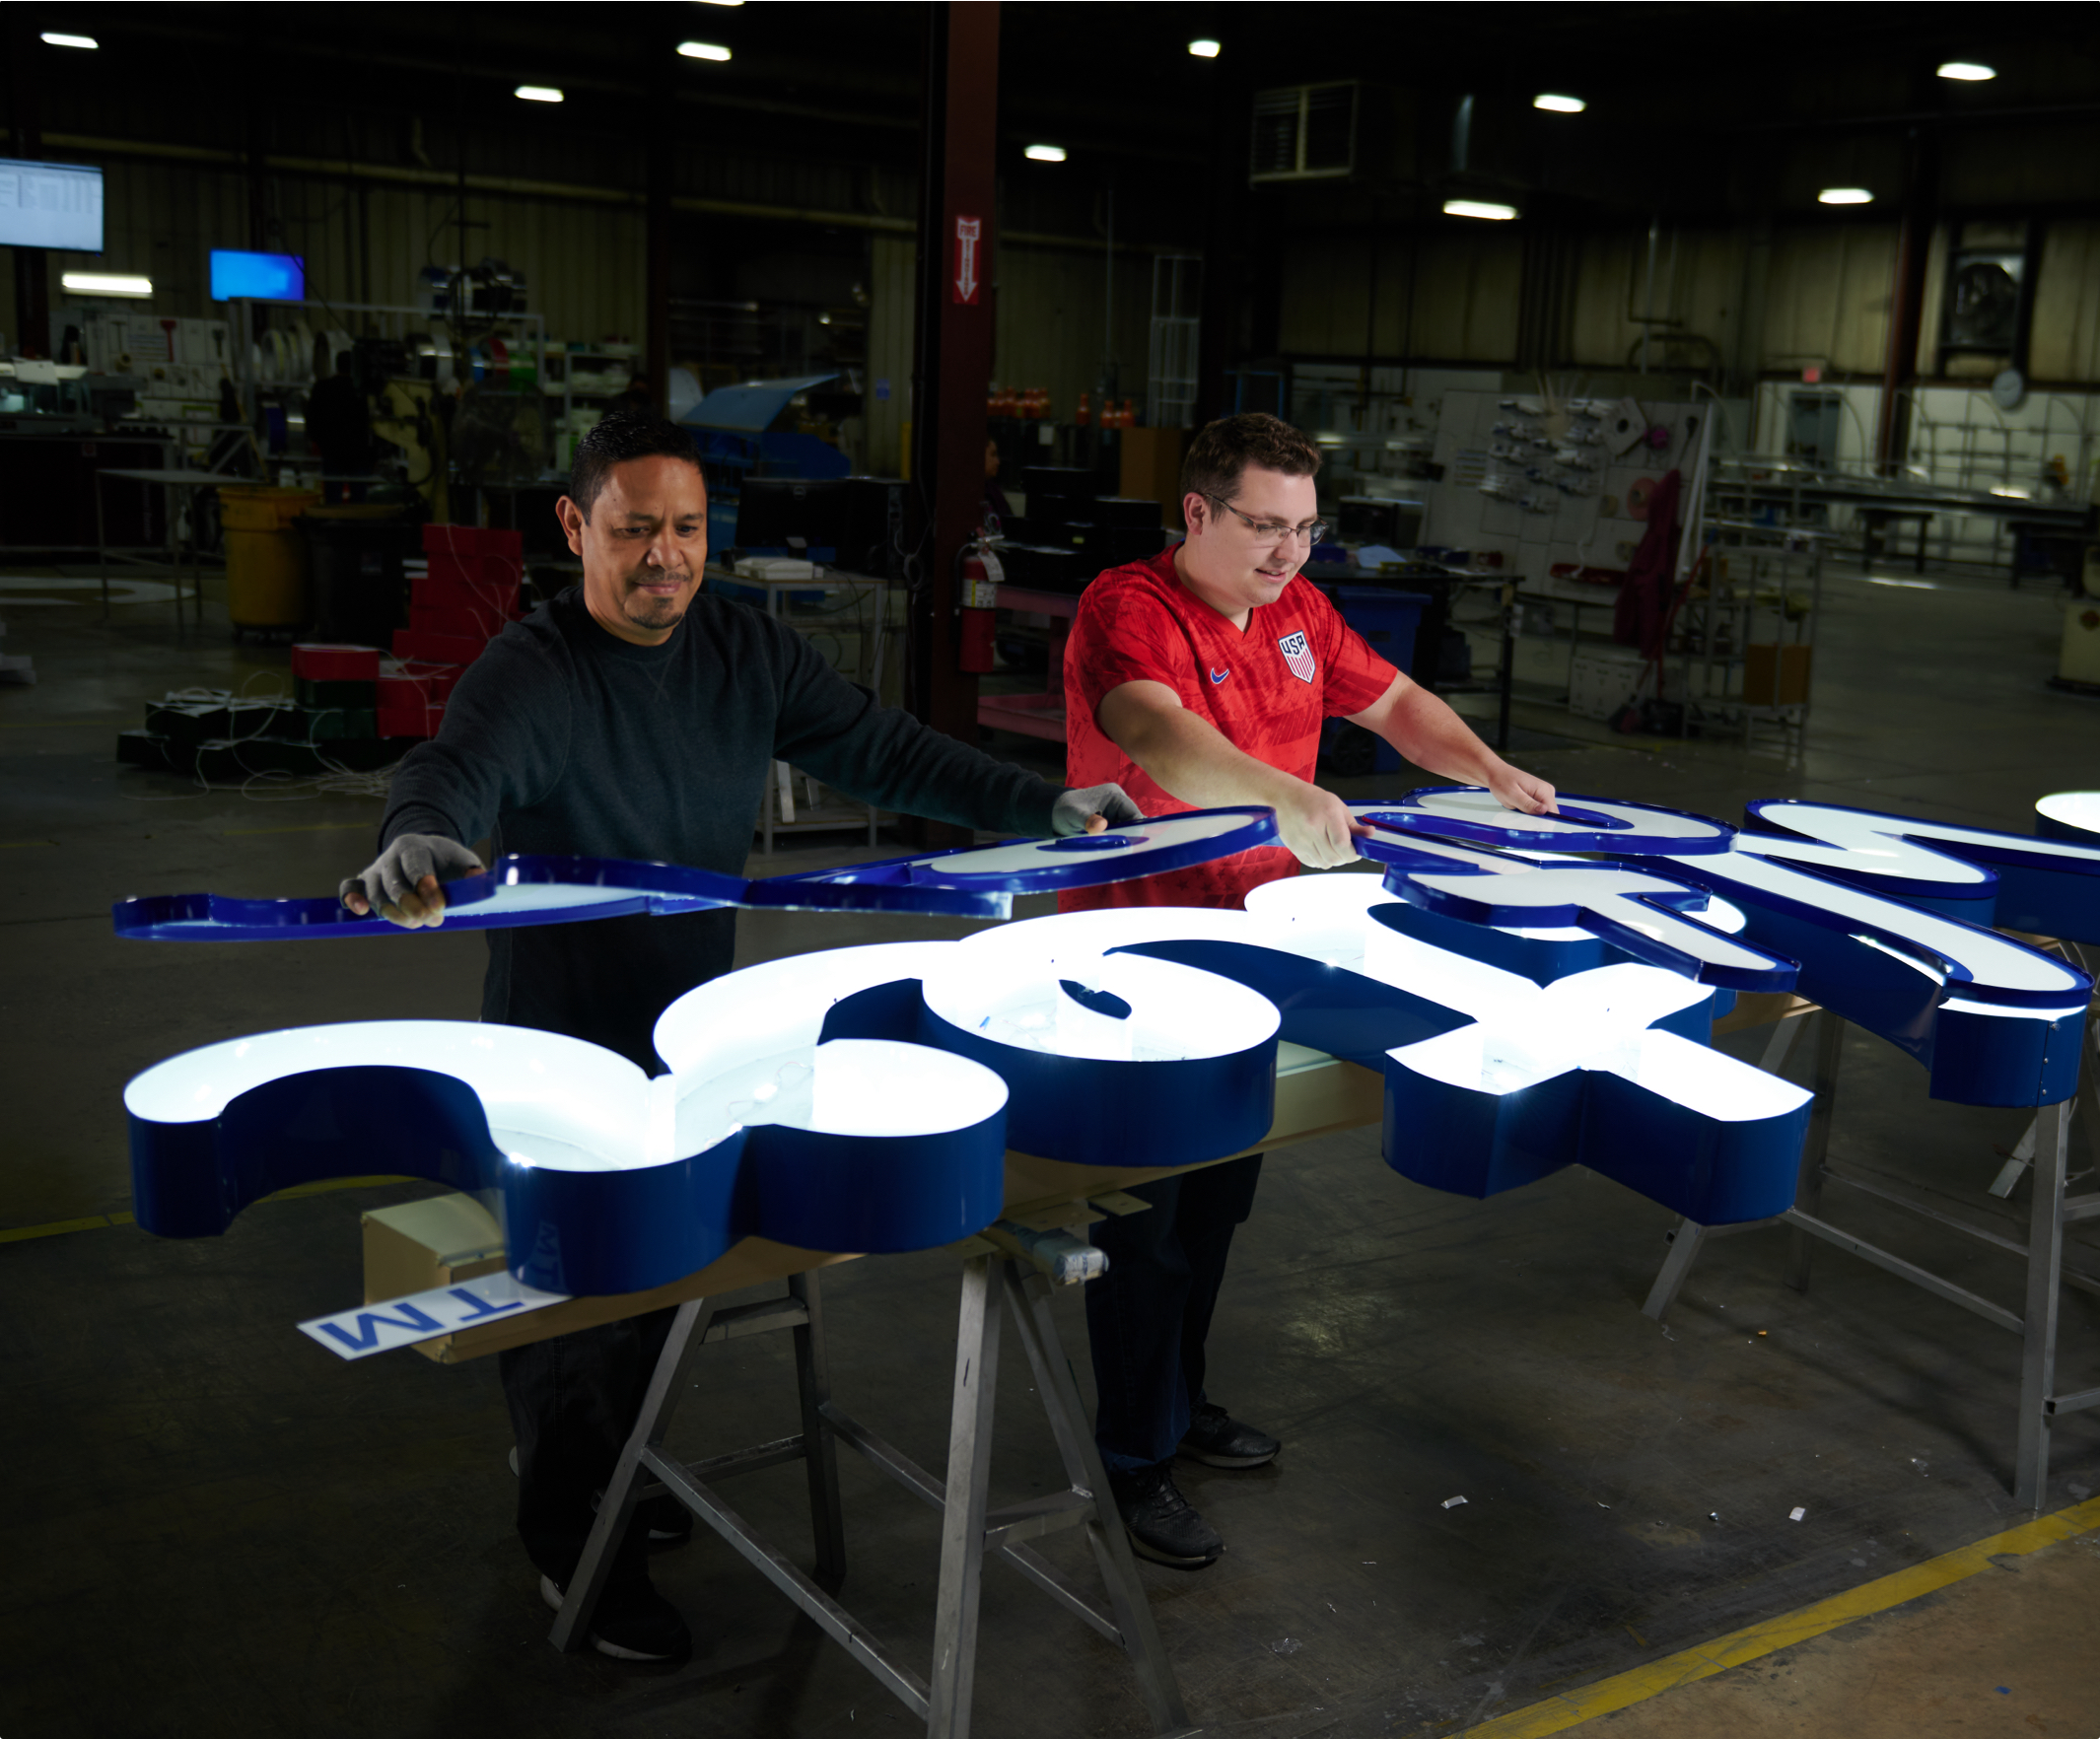 Male Sign Manufacturers adding final touches to client's building sign in Awning Innovations workshop